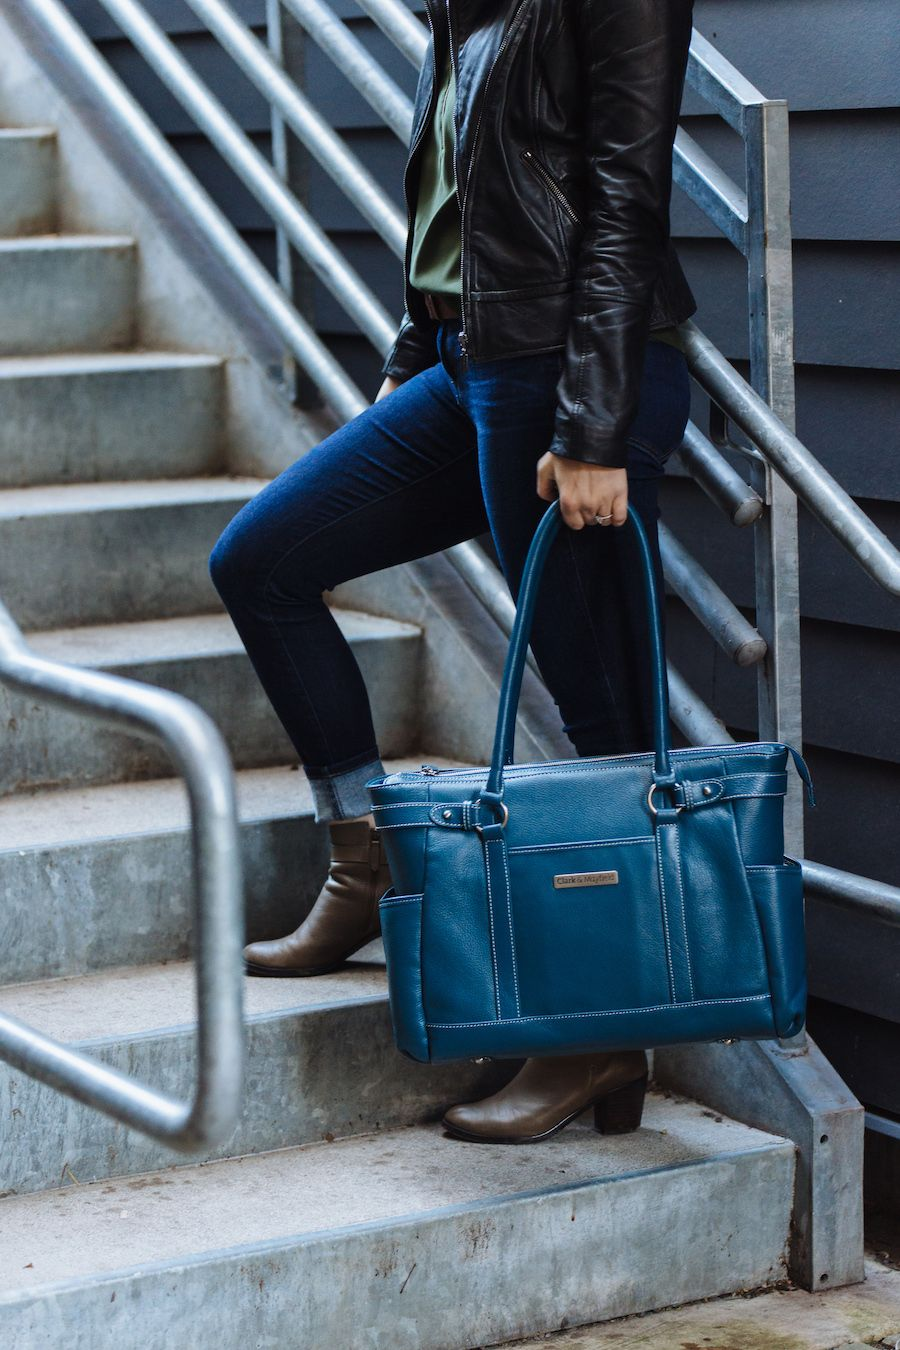 17 Stylish Bags That Are The Perfect Size For Carrying A Laptop Laptop Bag For Women Work Bags Laptop Laptop Bag Fashion